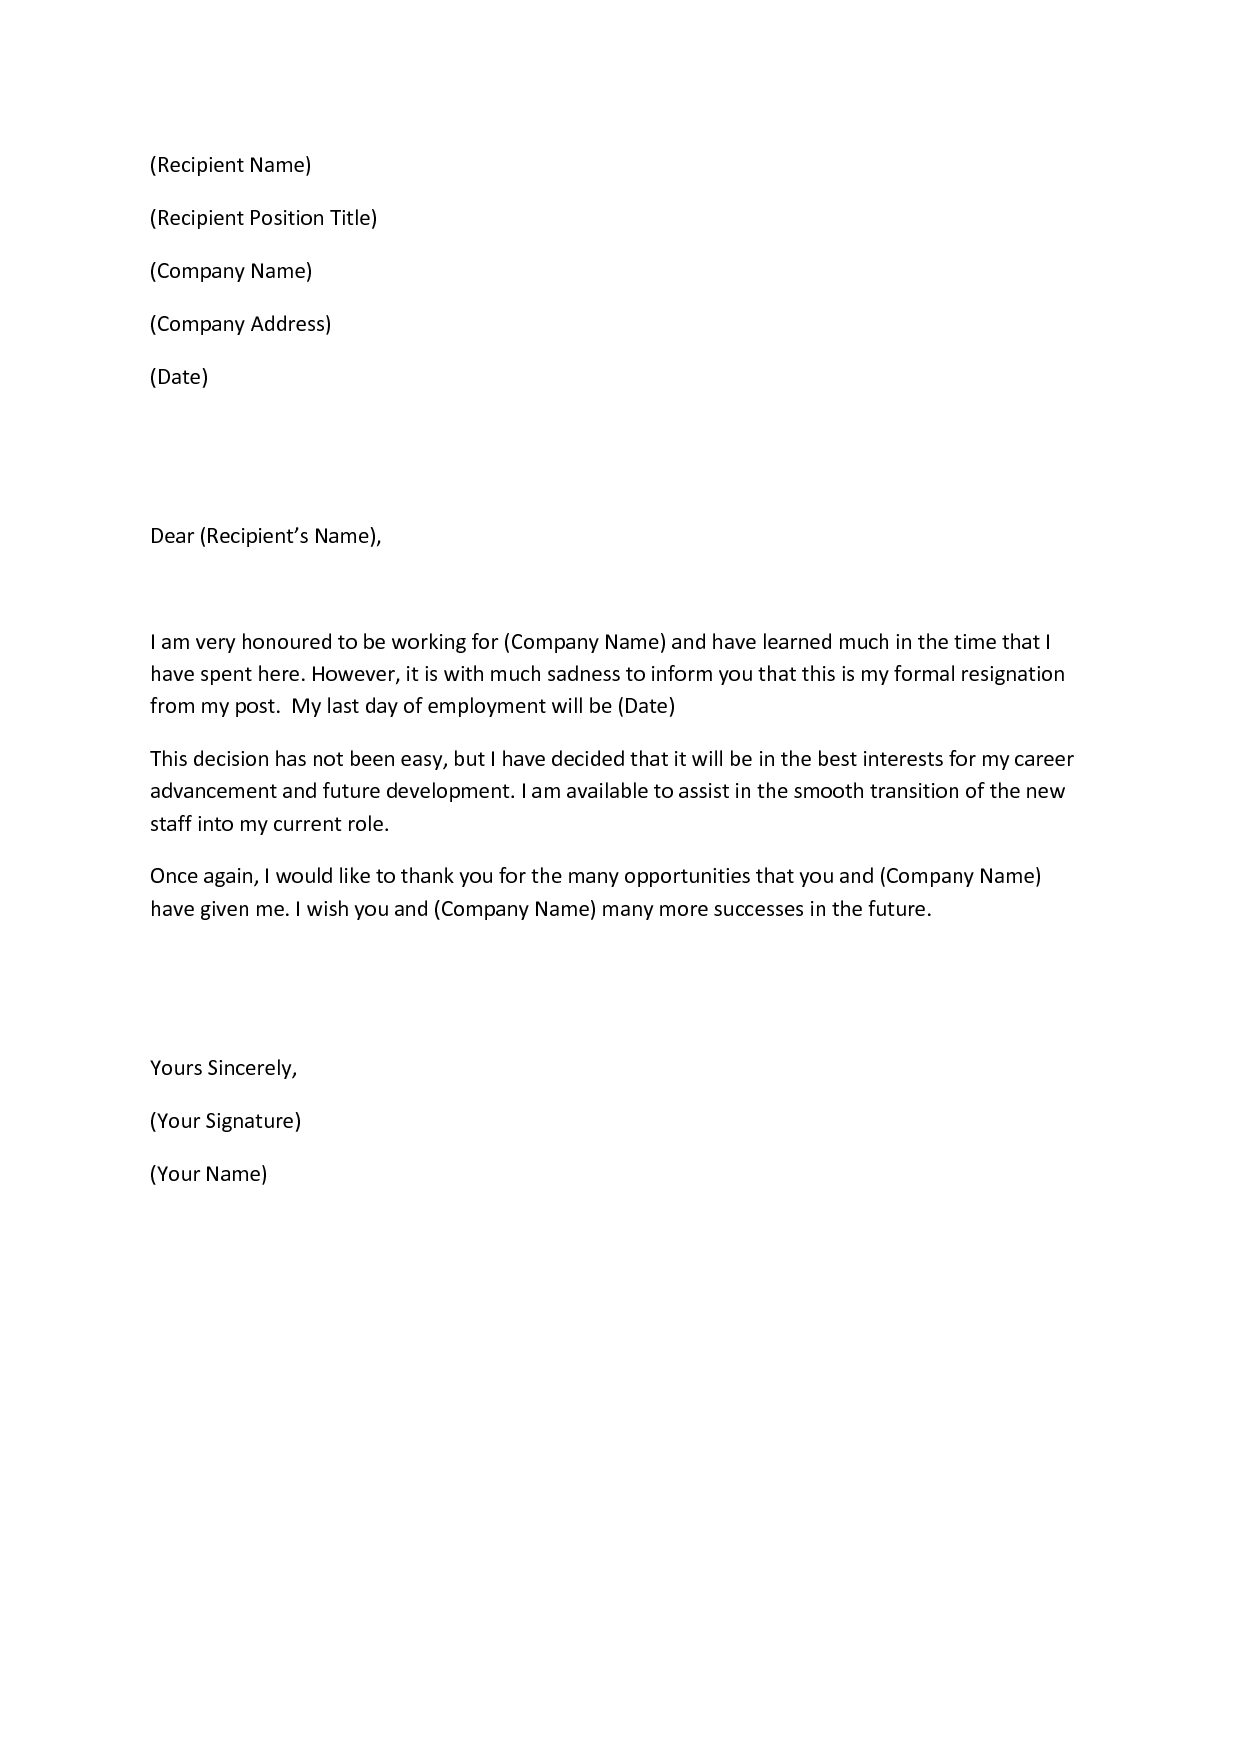 17 best ideas about formal resignation letter sample on pinterest job resignation letter resignation letter and sample of resignation letter